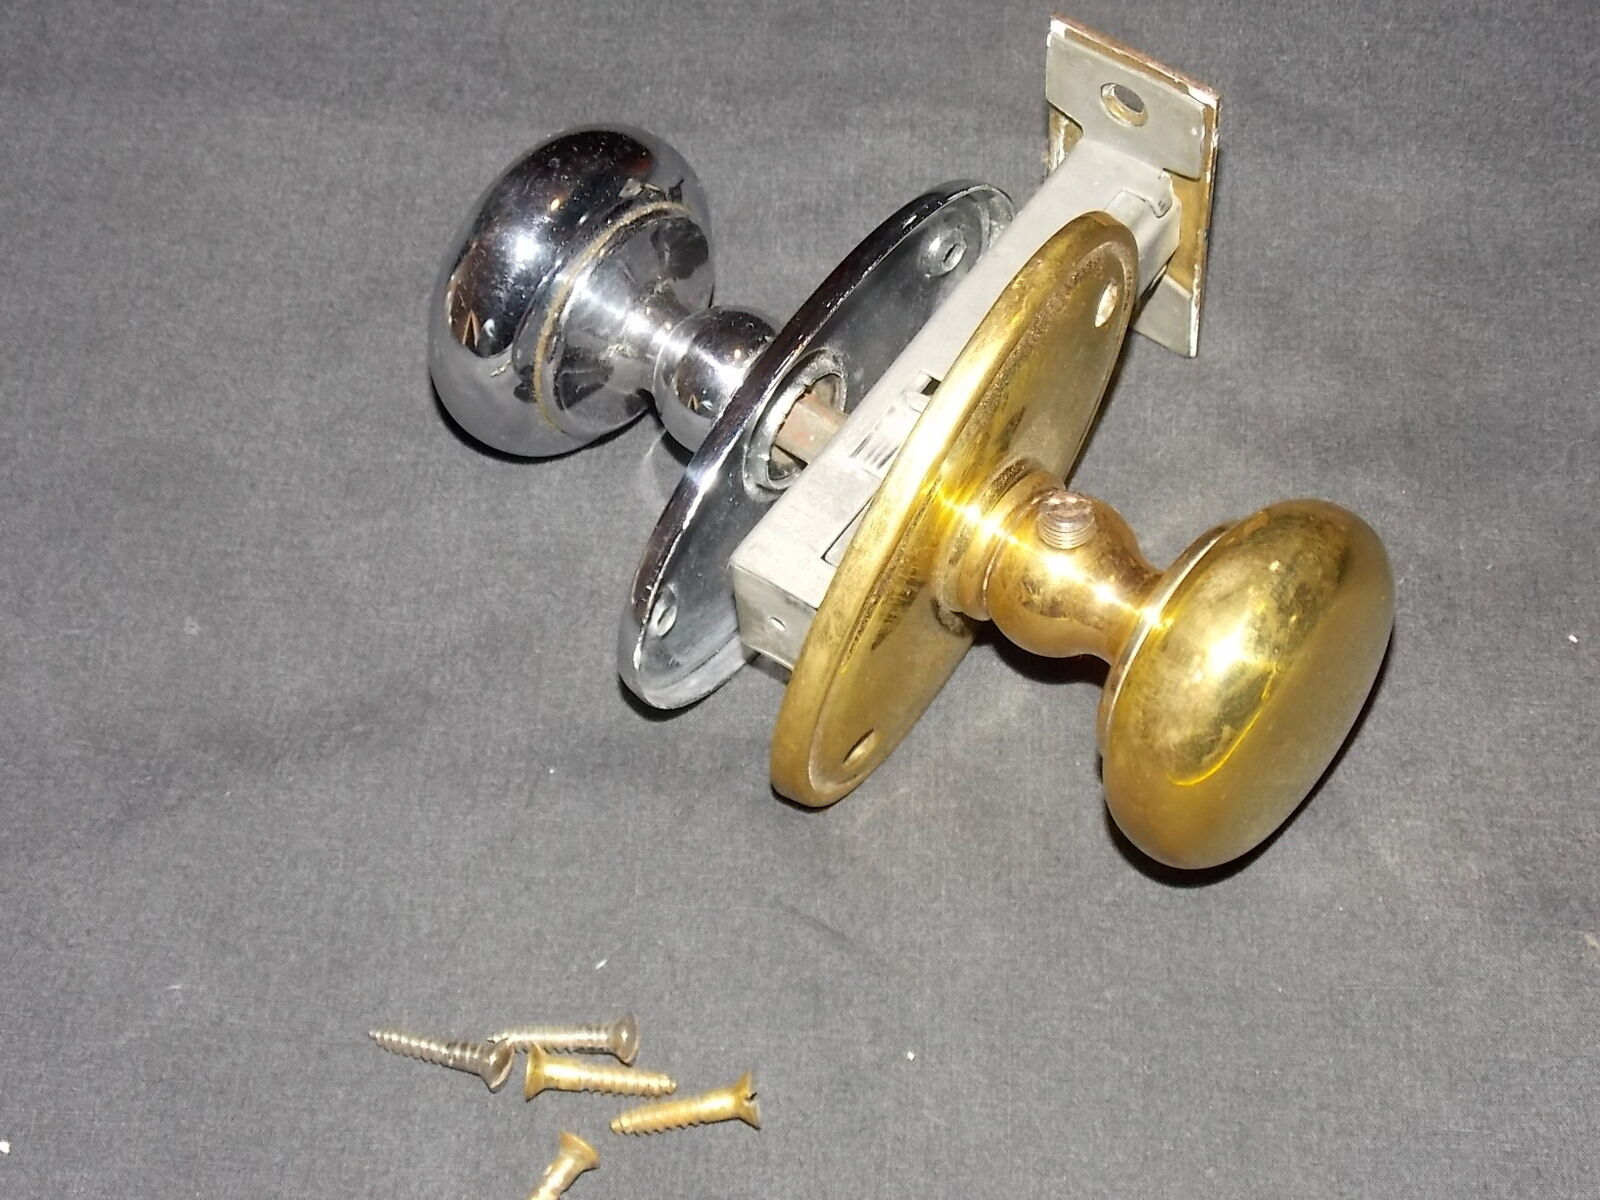 Vintage antique door handle assembly brass and chrome